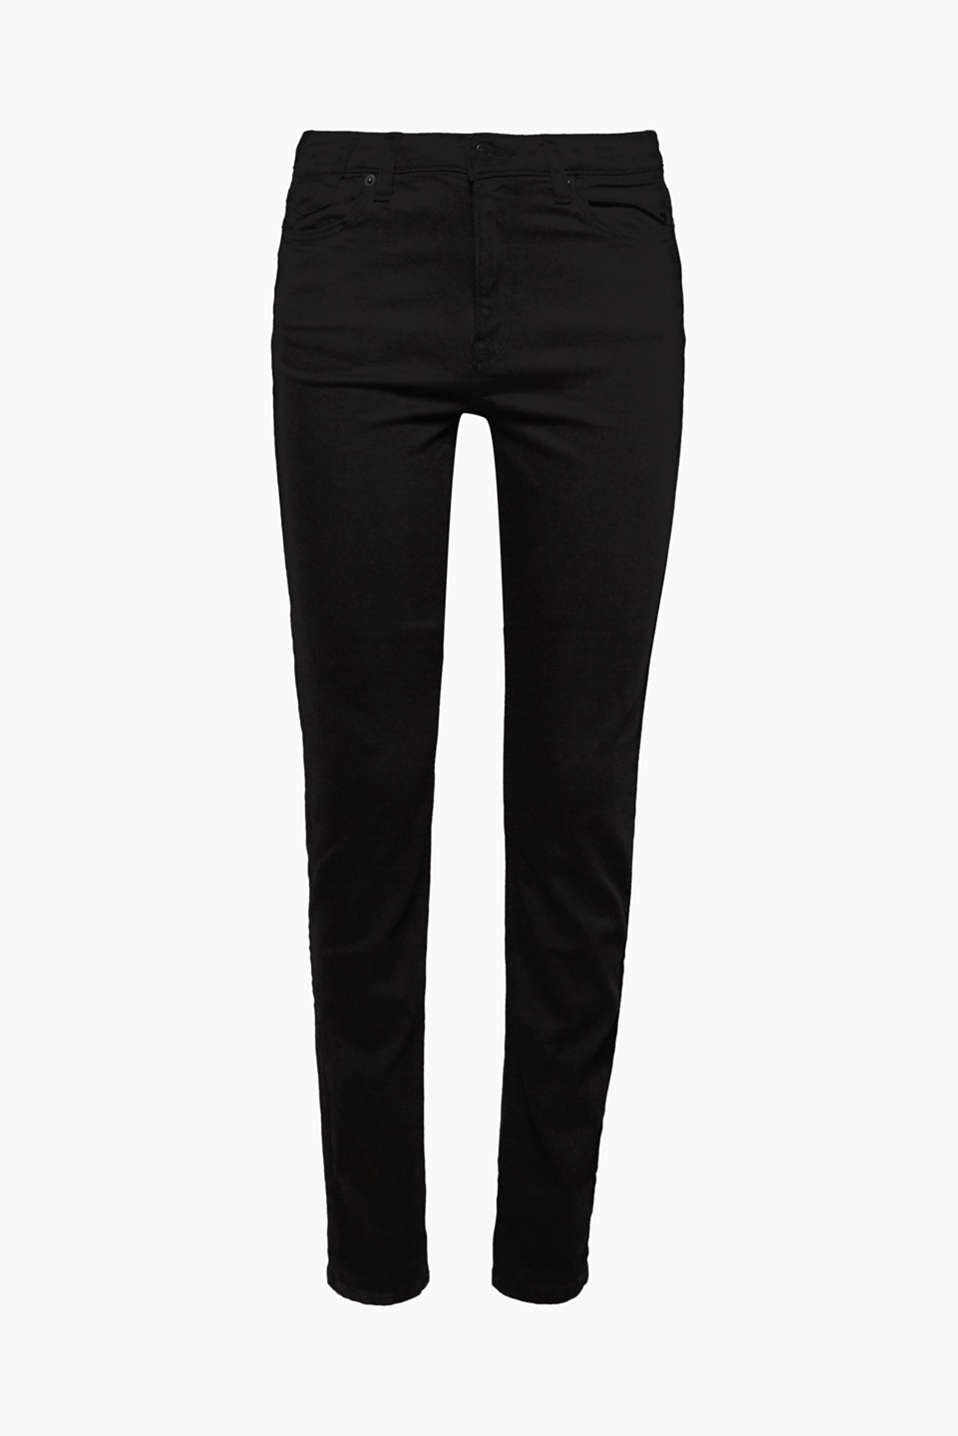 These high-rise jeans made of jet black cotton denim with added stretch for comfort are the perfect essential.